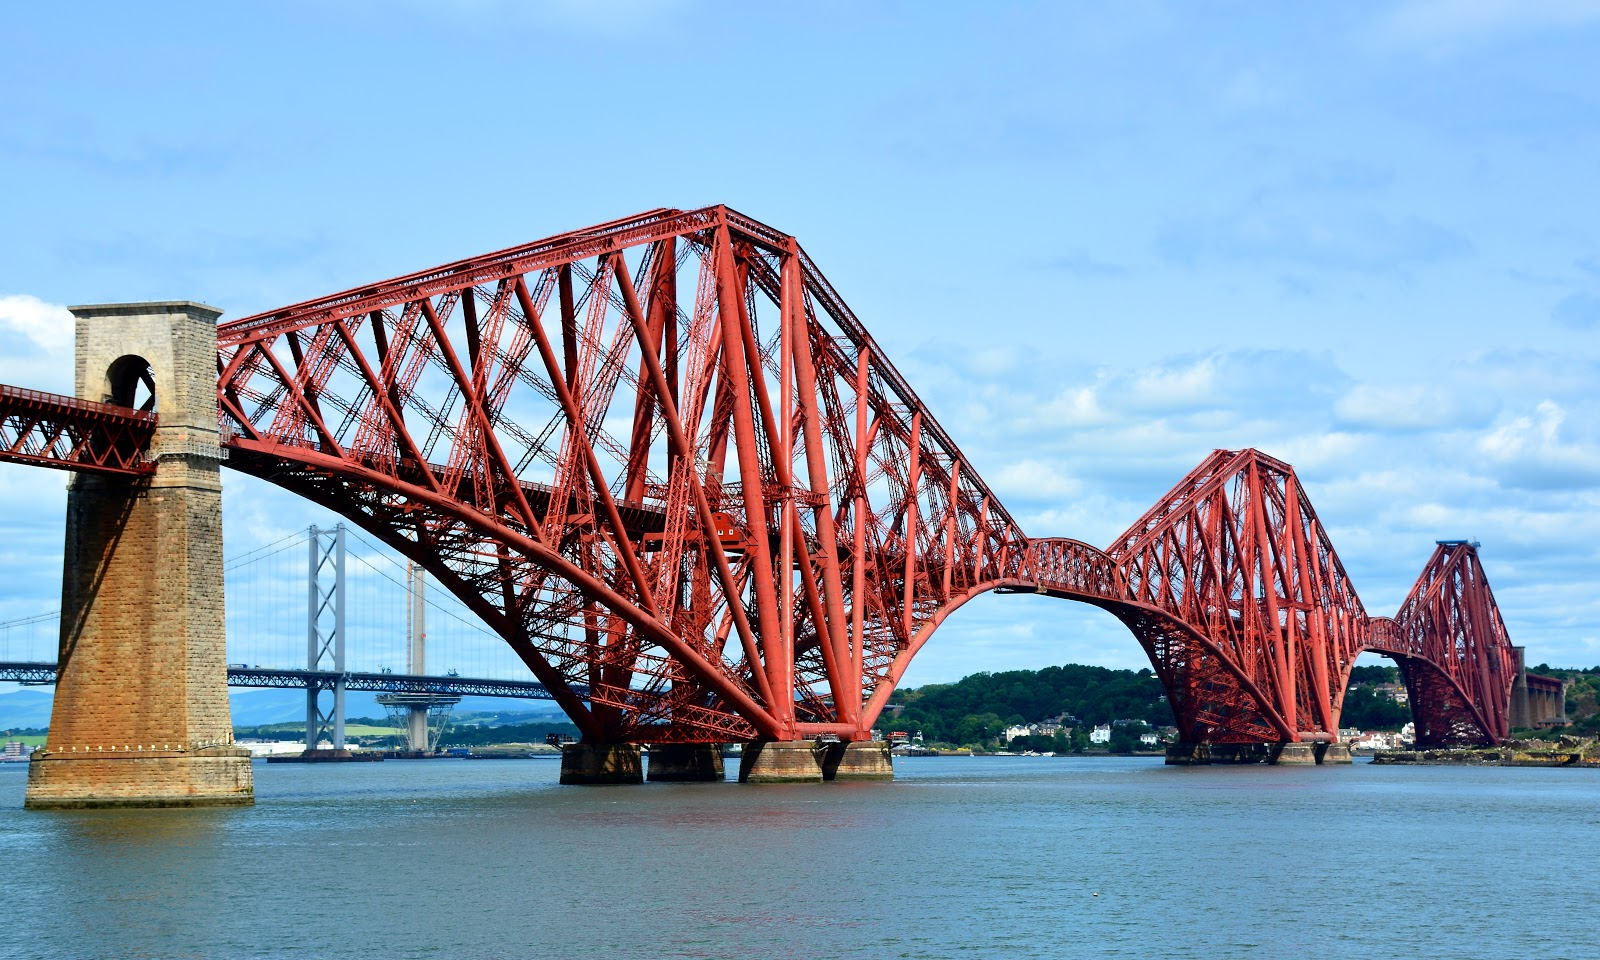 Forth Bridge over the Firth of Forth